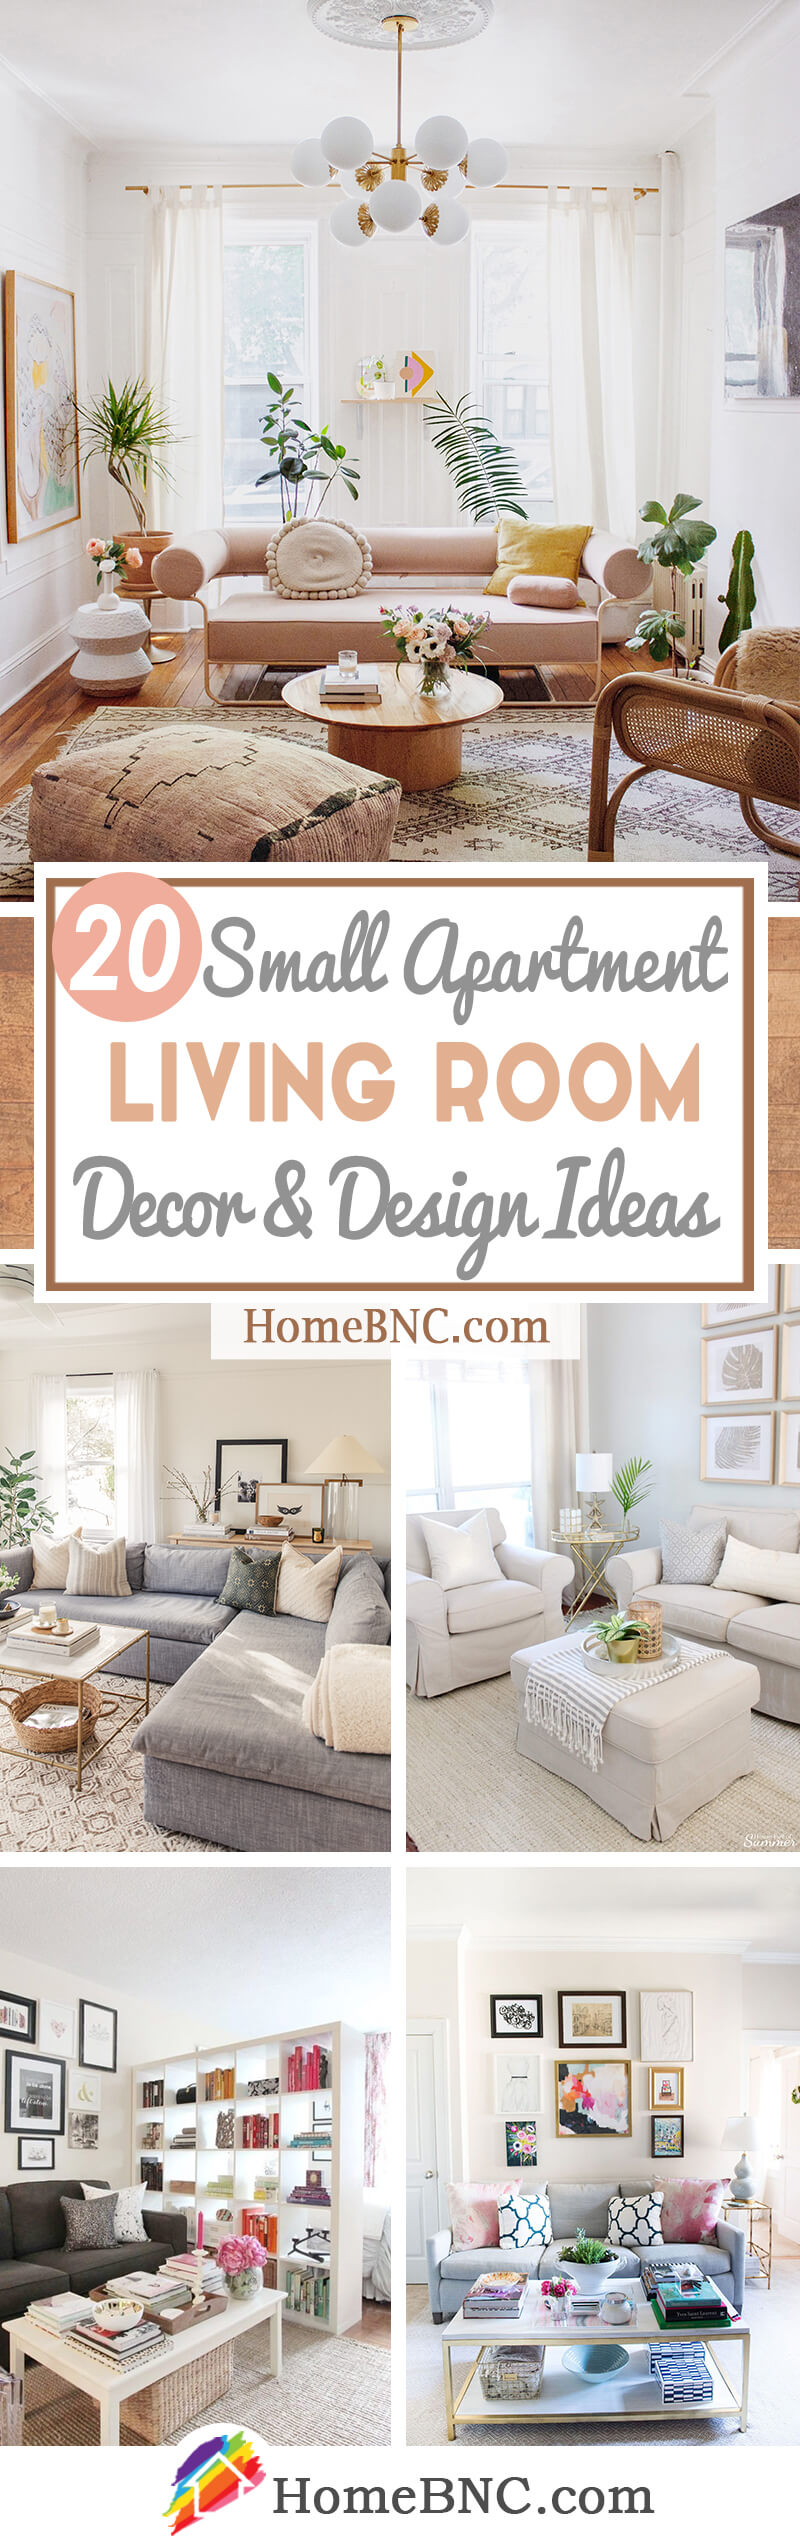 20 Best Small Apartment Living Room Decor and Design Ideas ...